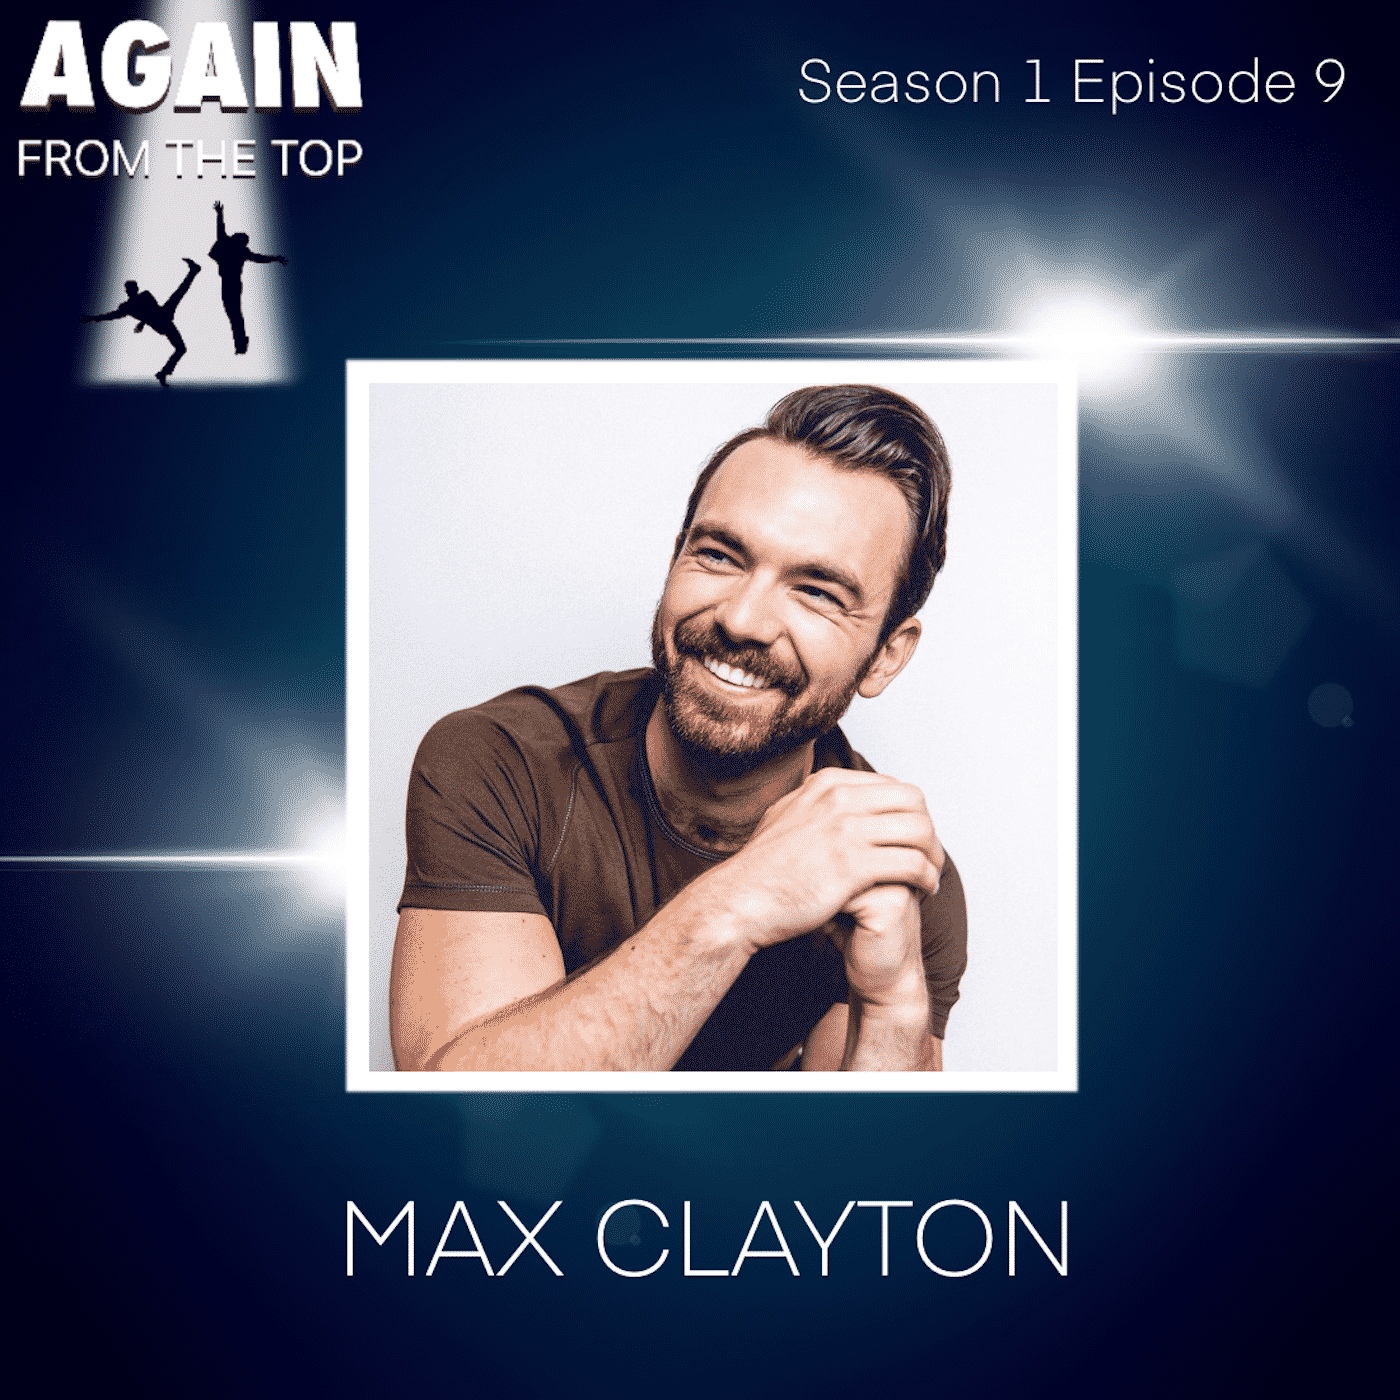 Again From The Top - S1/Ep9: MAX CLAYTON: LET'S HEAR IT FOR THE THIGHS